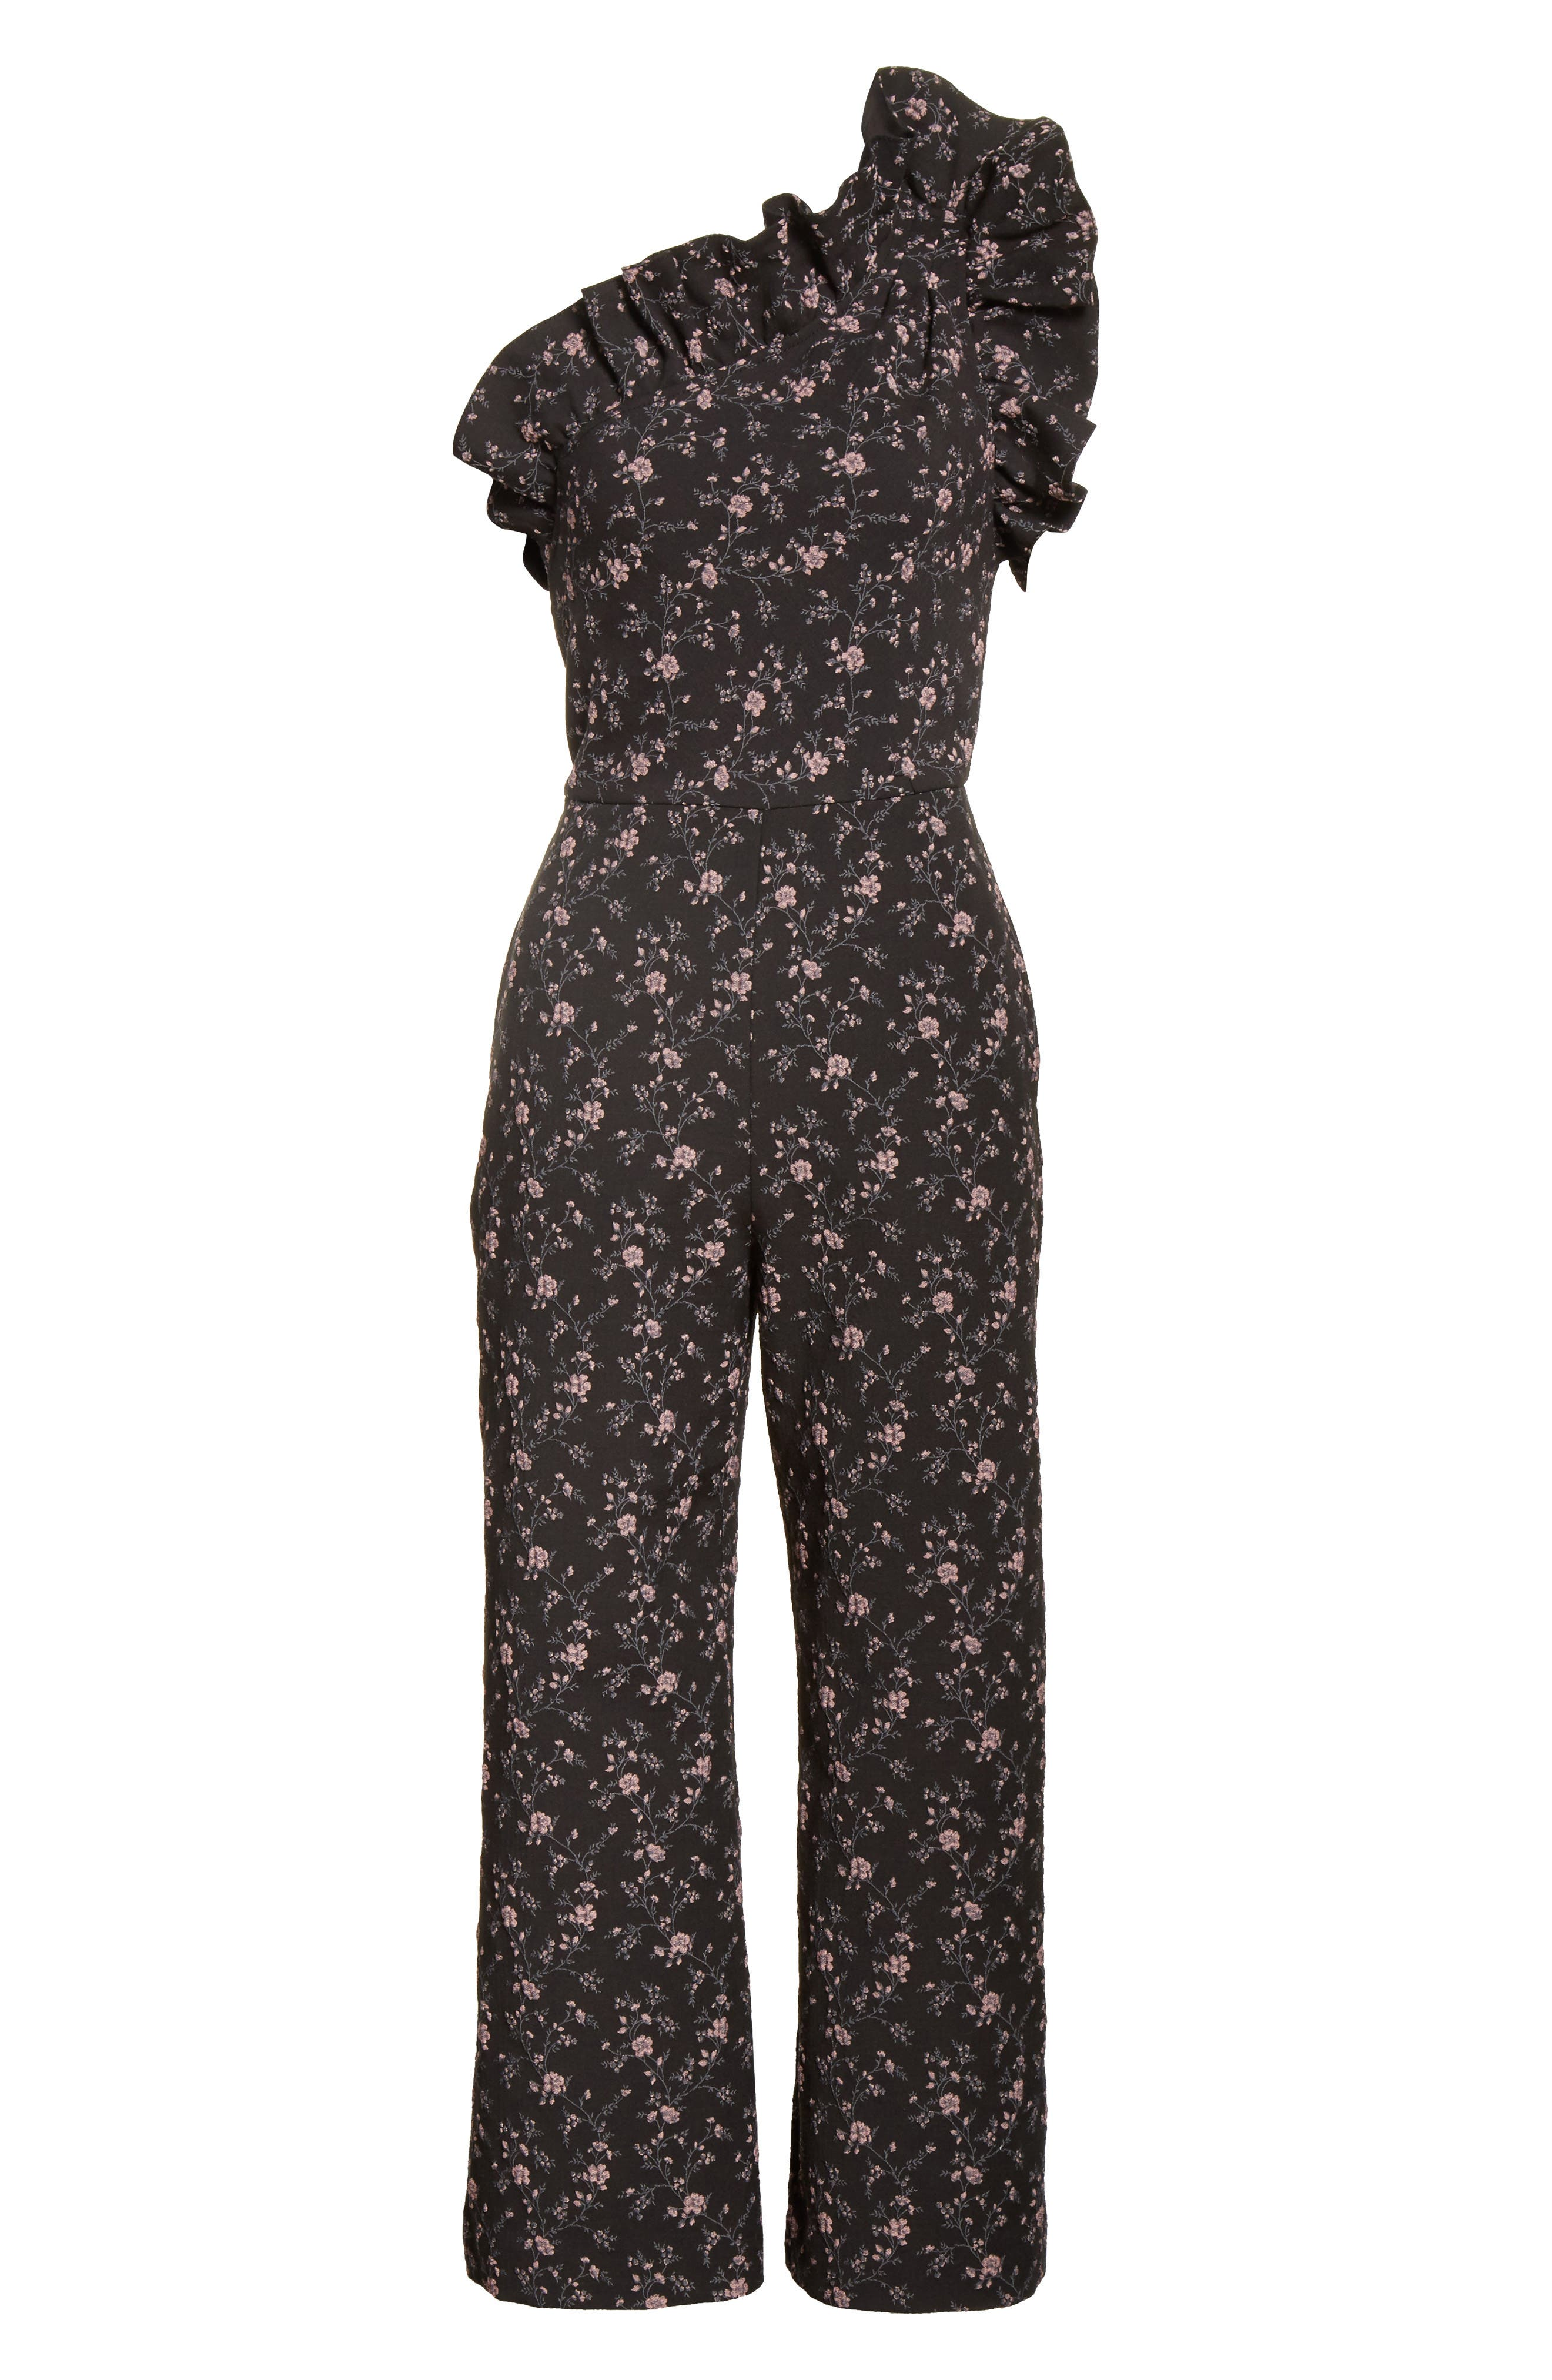 One-Shoulder Floral Jumpsuit,                             Alternate thumbnail 6, color,                             014